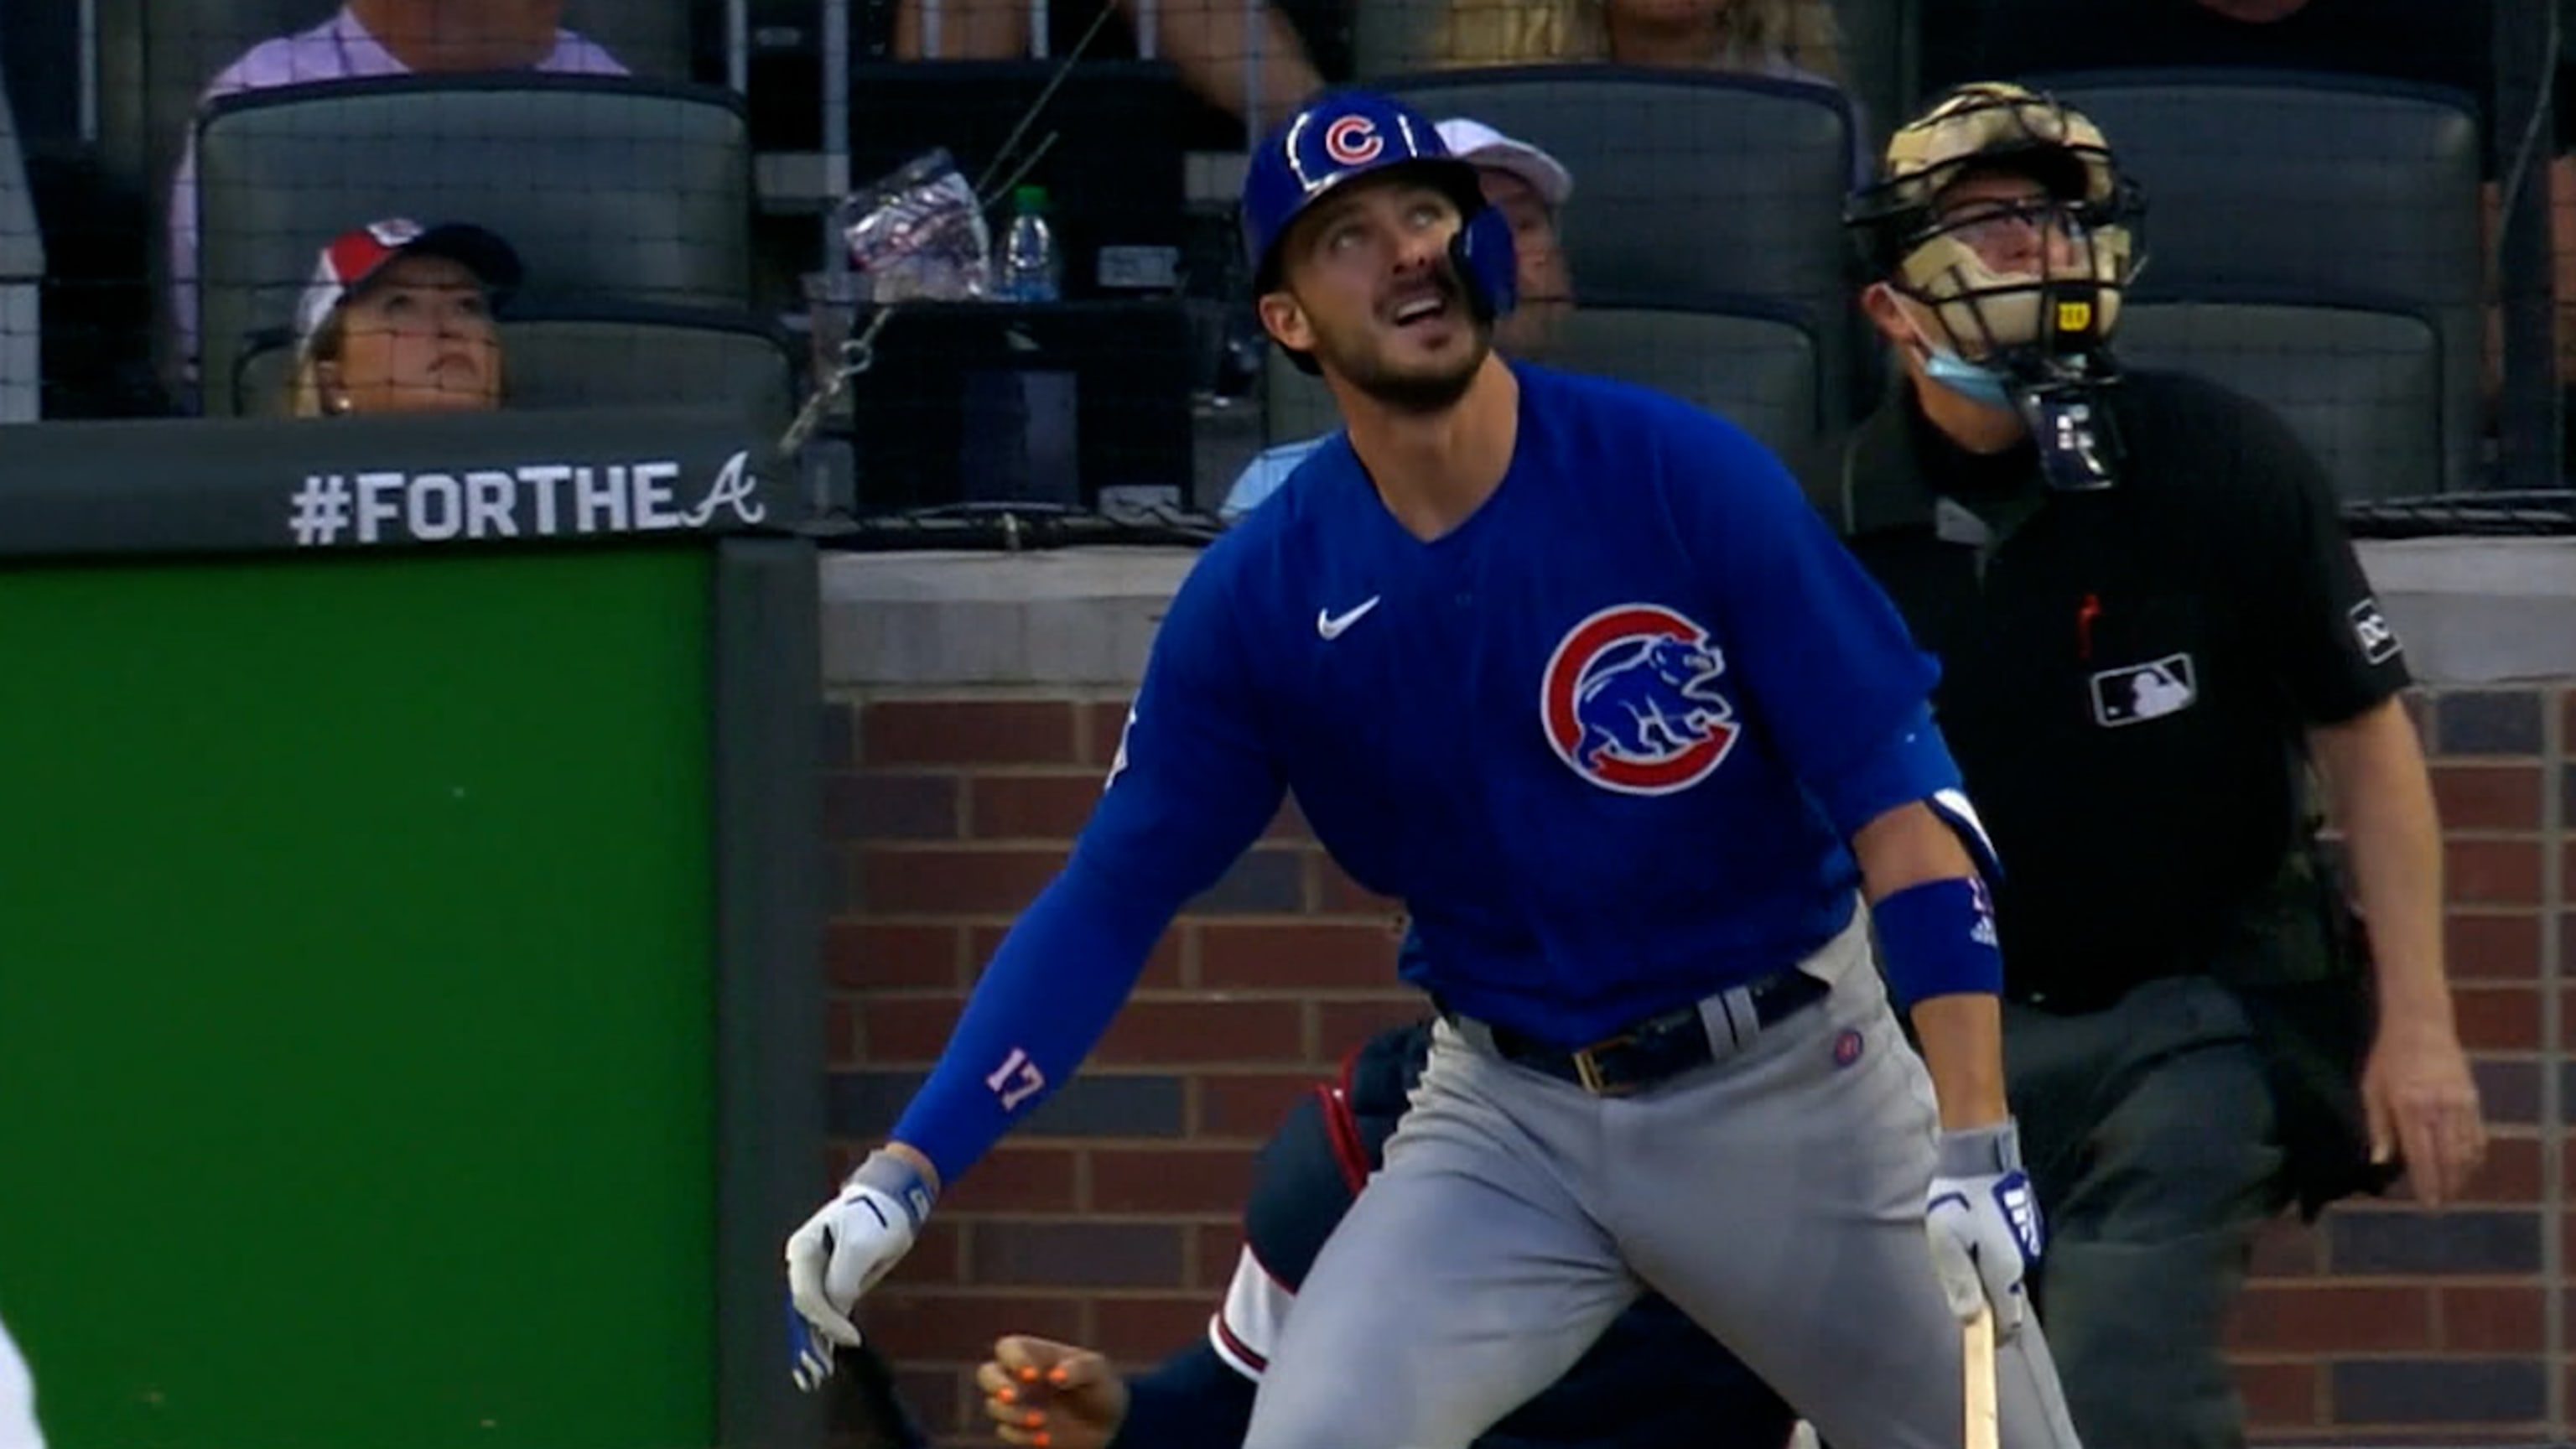 Bryant leads Cubs in 1st half